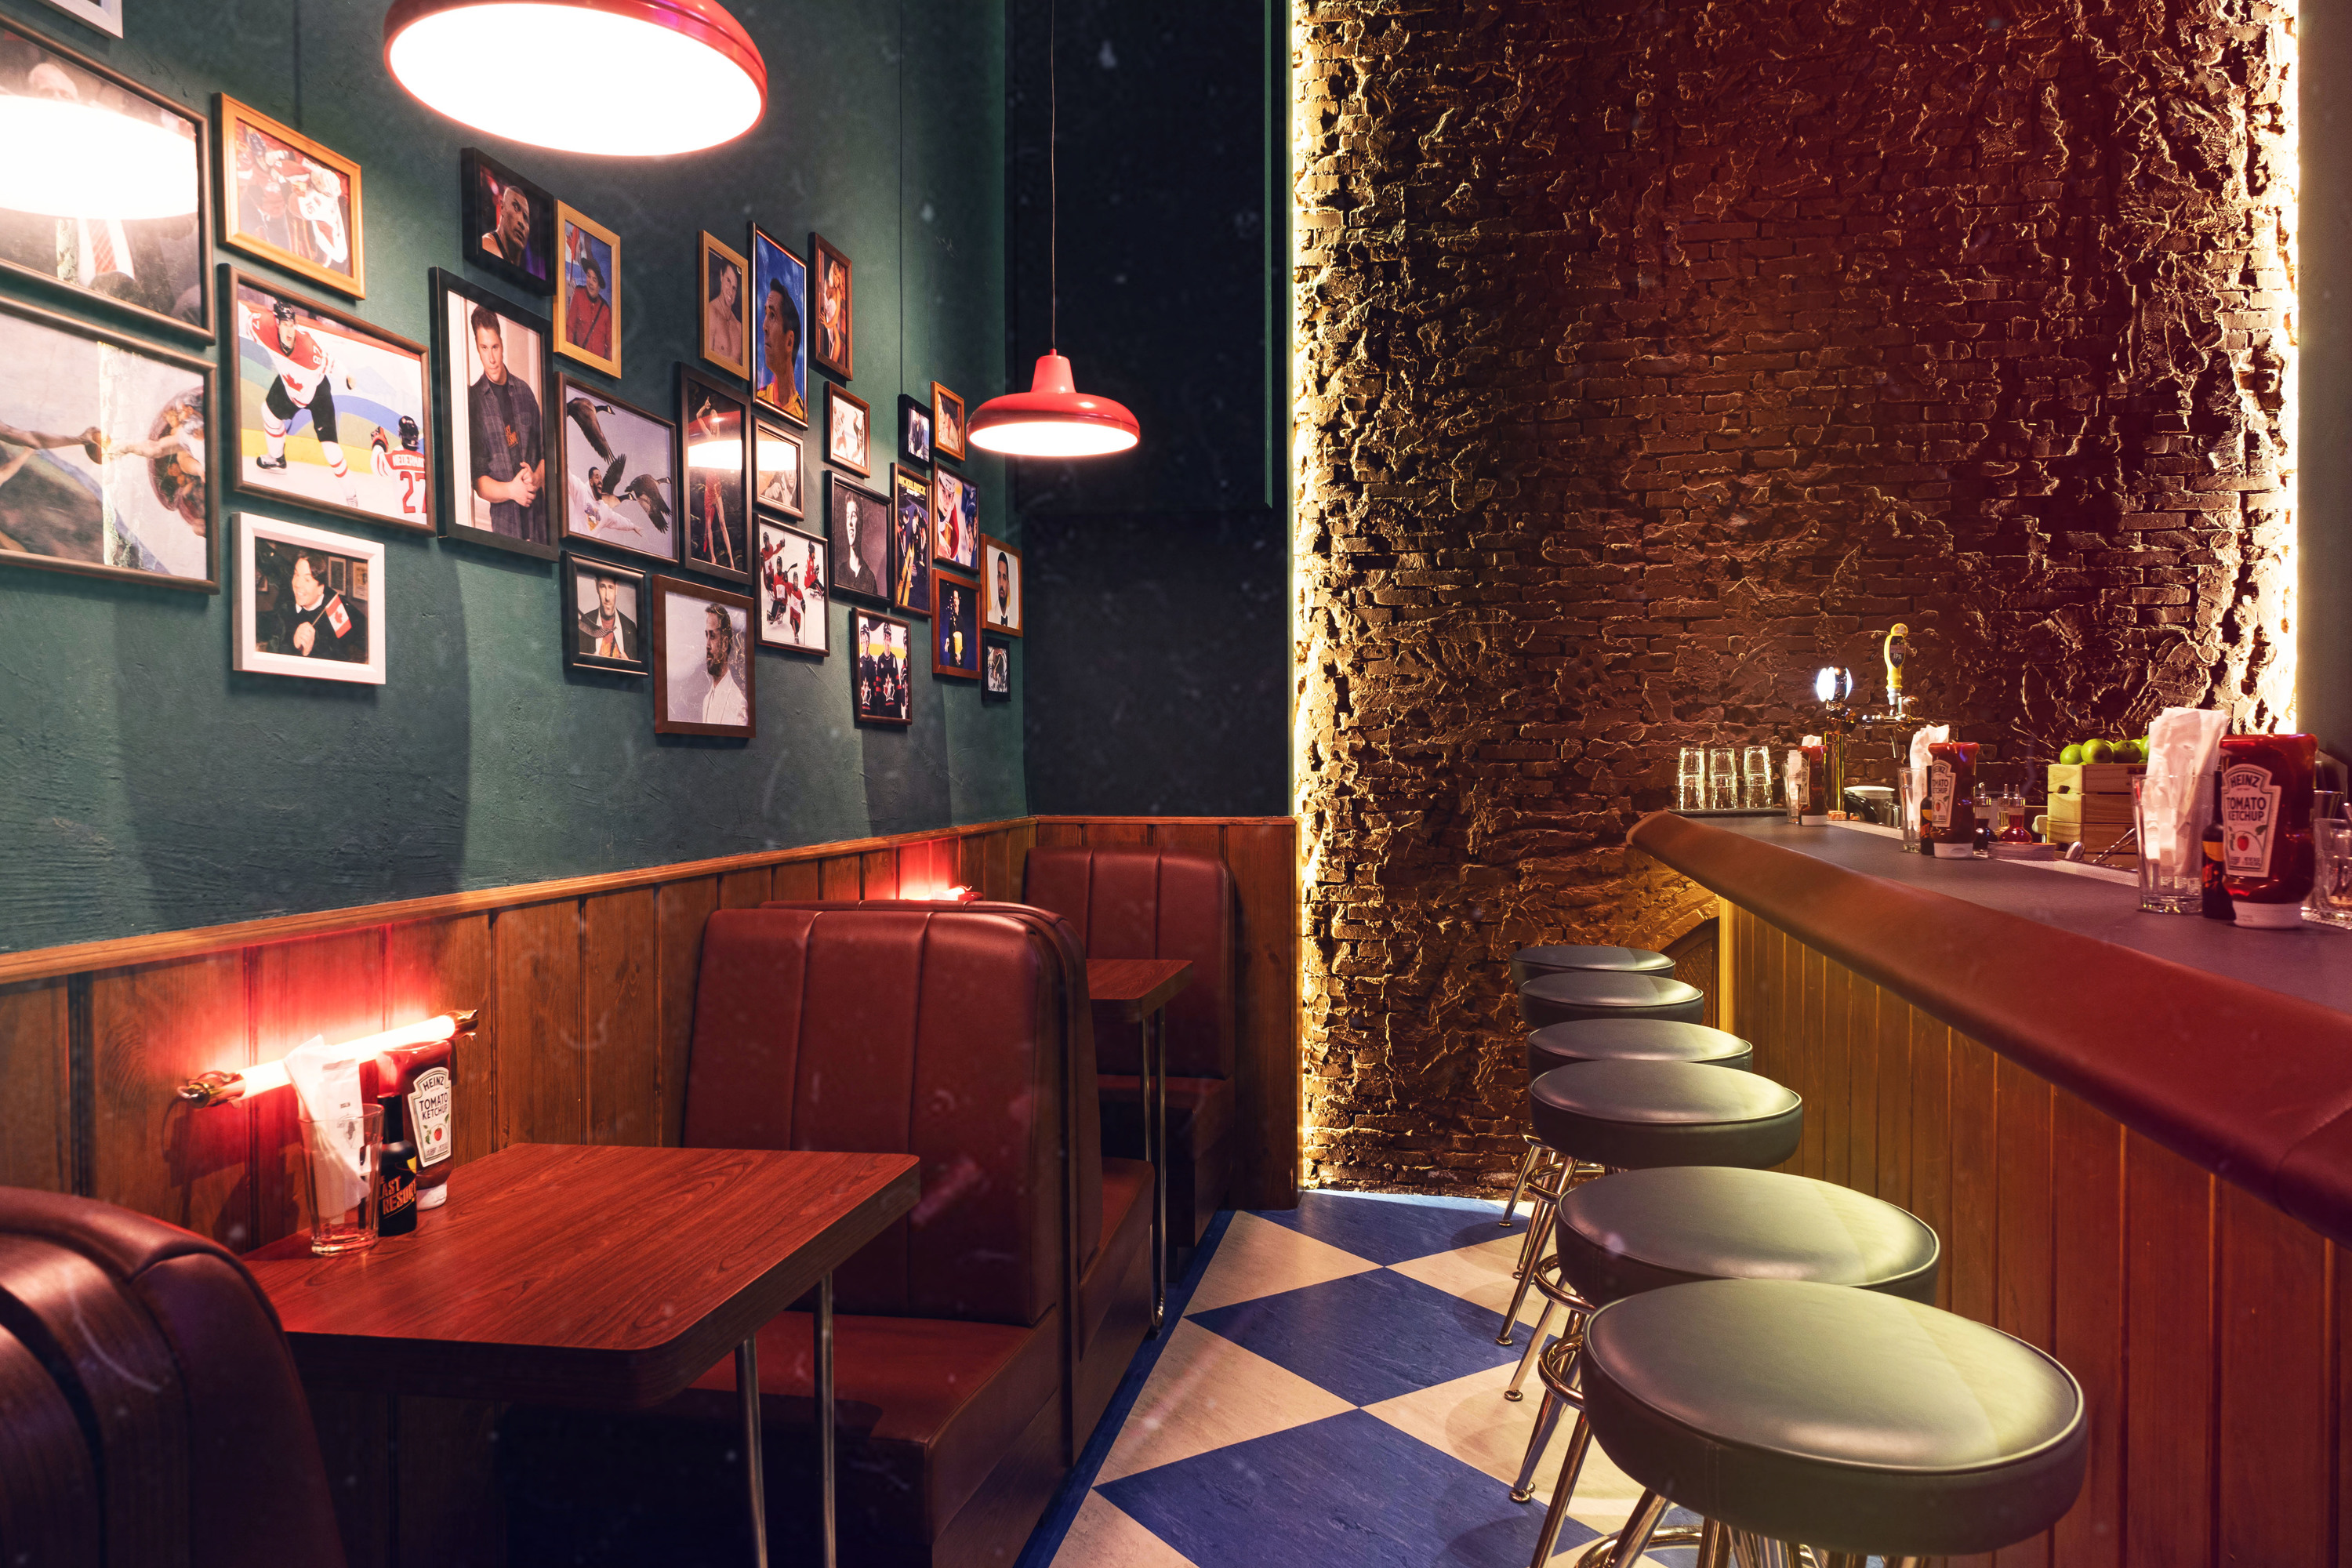 New dive bar The Last Resort opens in Soho